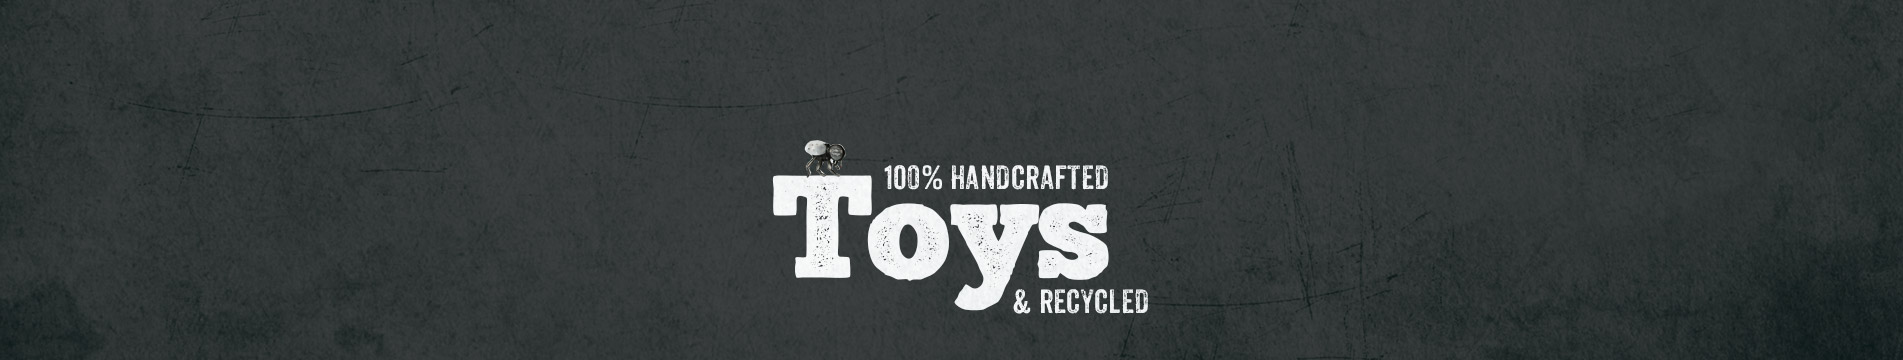 Handmade Recycled Toys